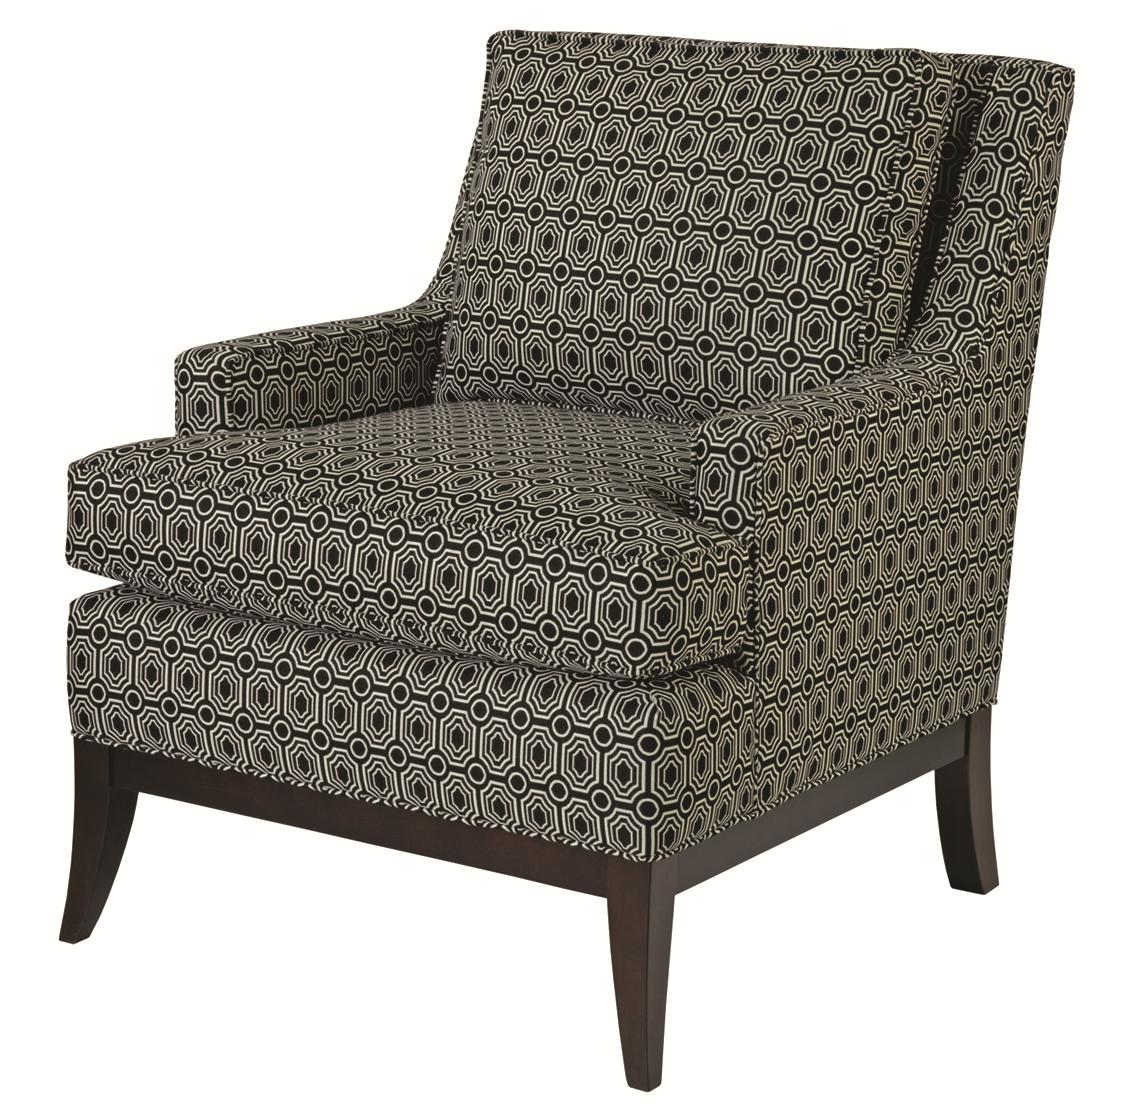 Kincaid Furniture Accent Chairs Park Avenue Chair - Item Number: 835-00